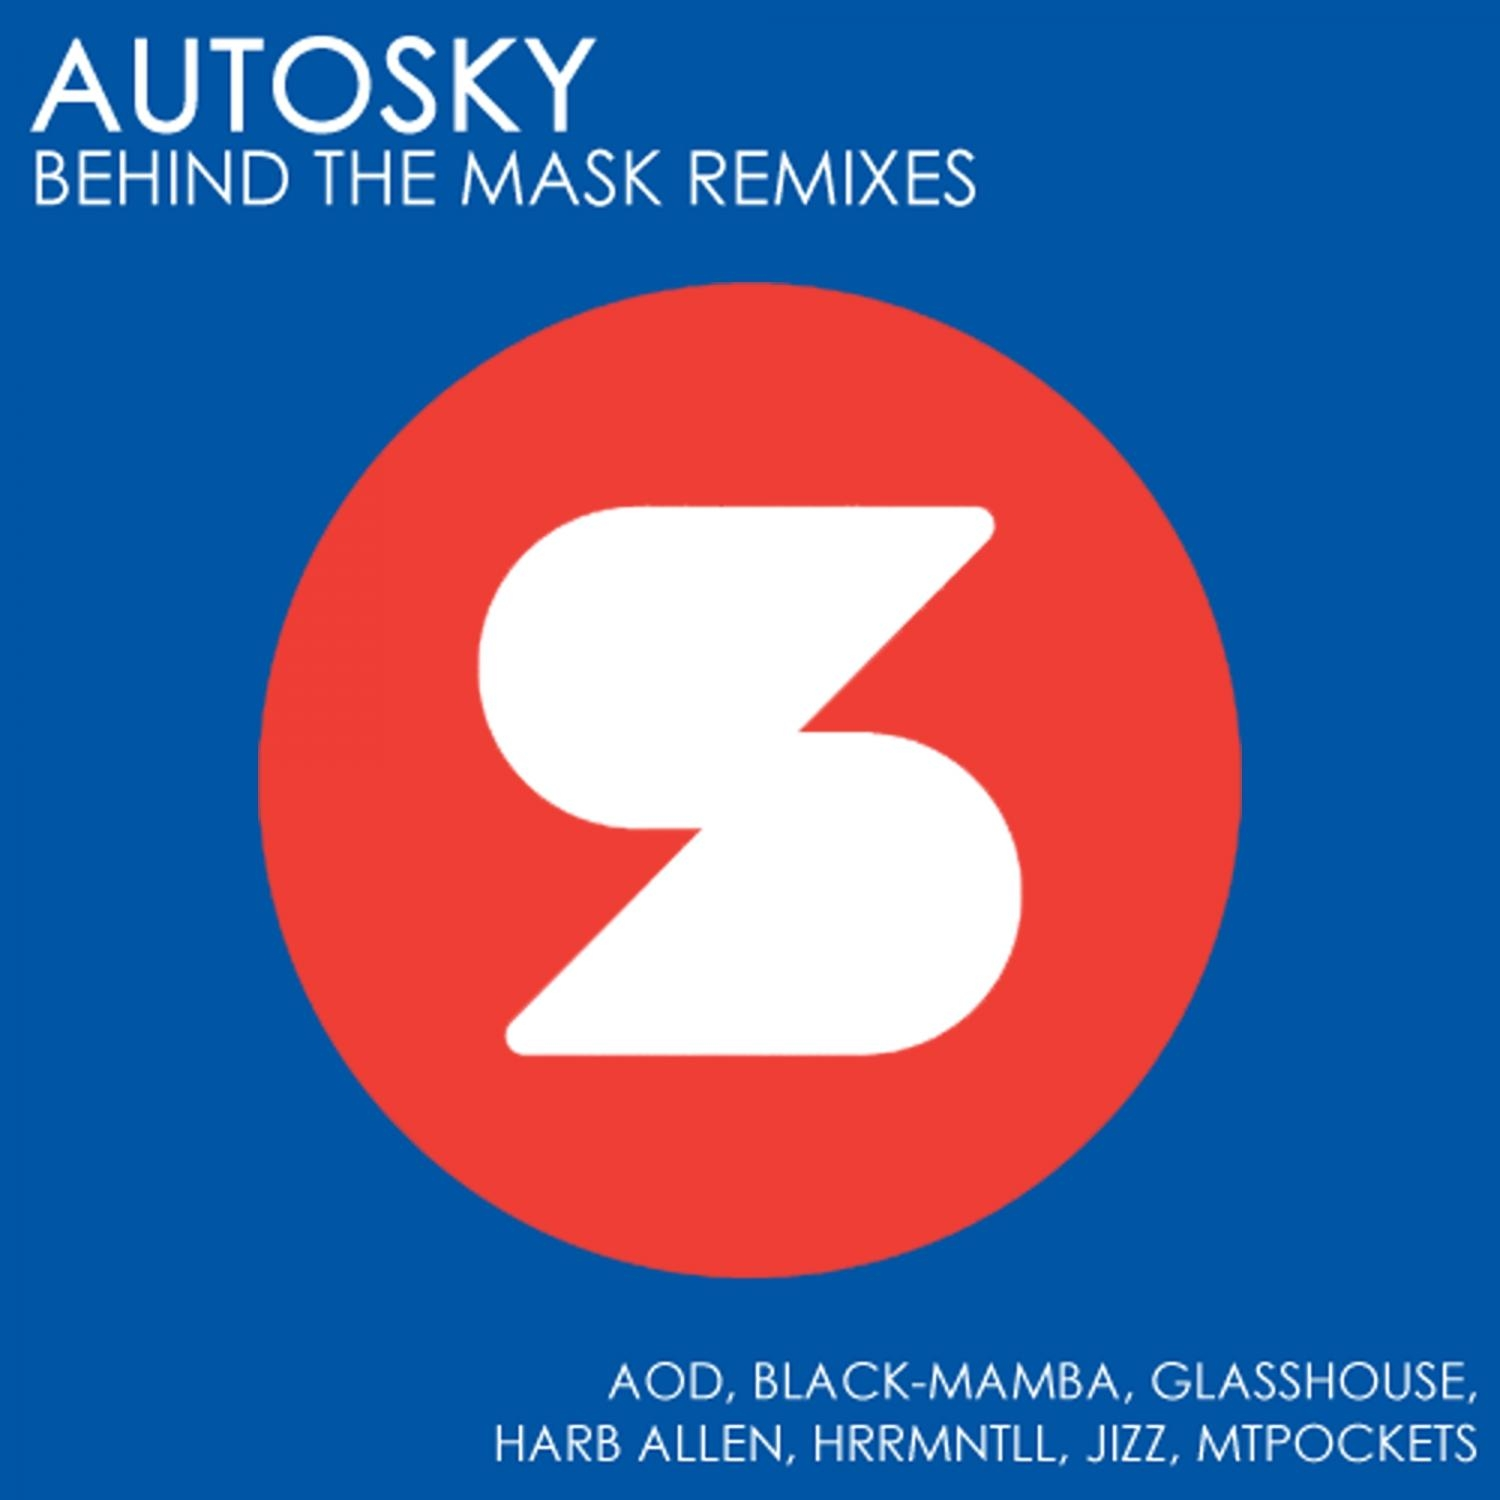 Autosky, AOD - Behind The Mask (AOD Remix)